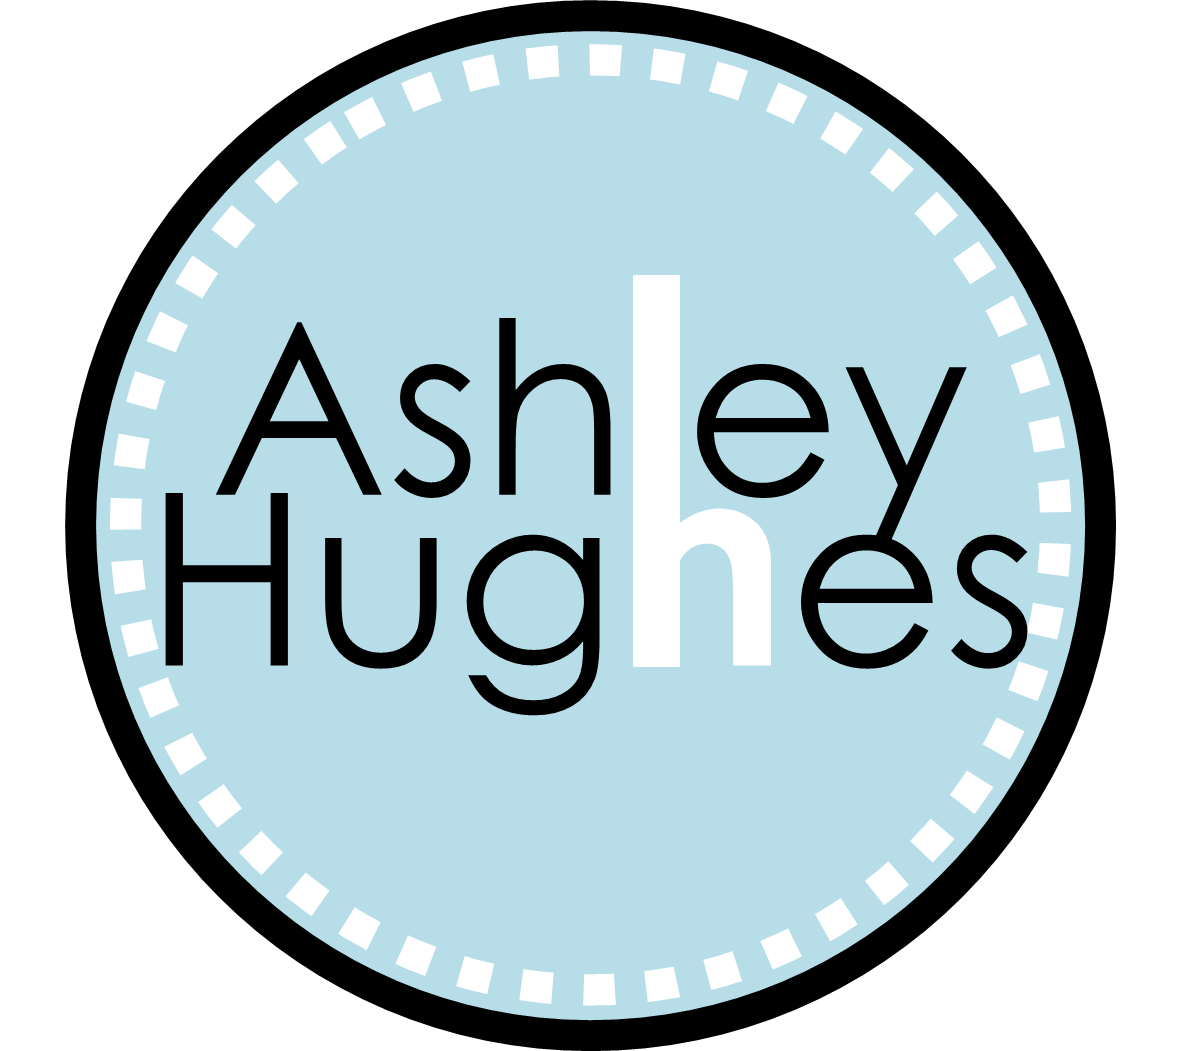 Ashley Hughes